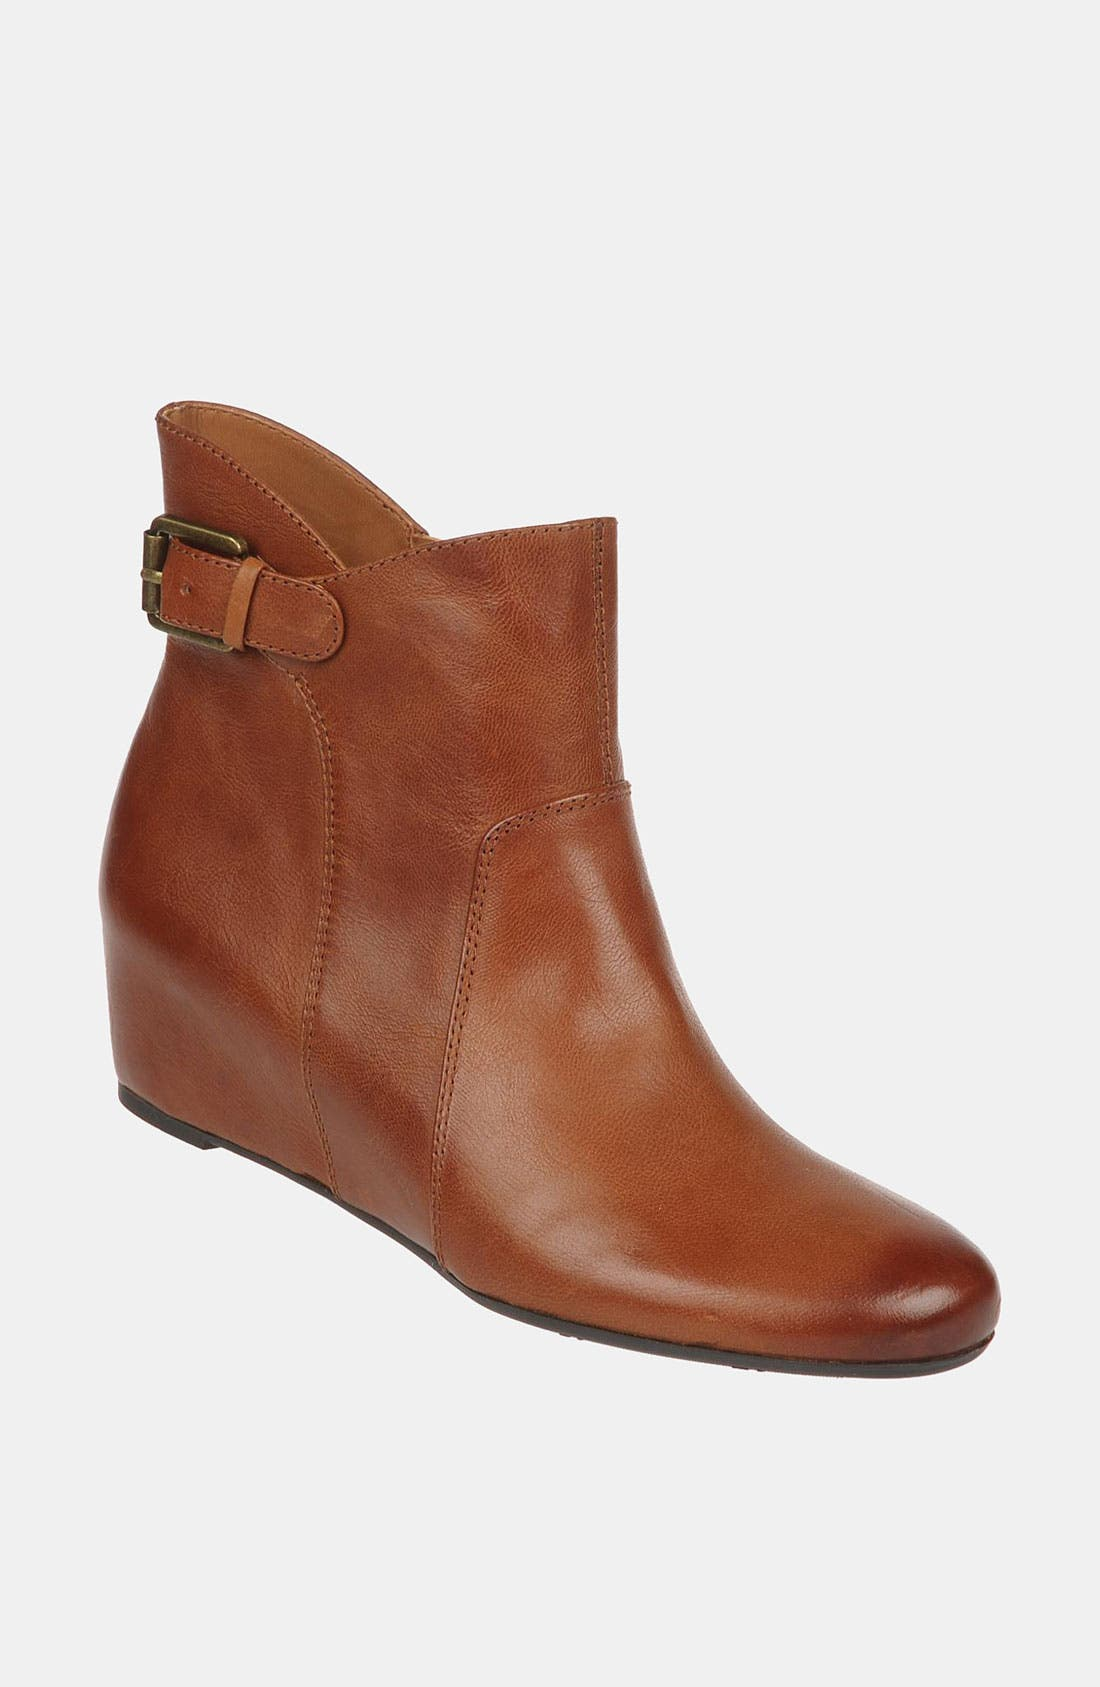 Main Image - Franco Sarto 'Irvine' Short Boot